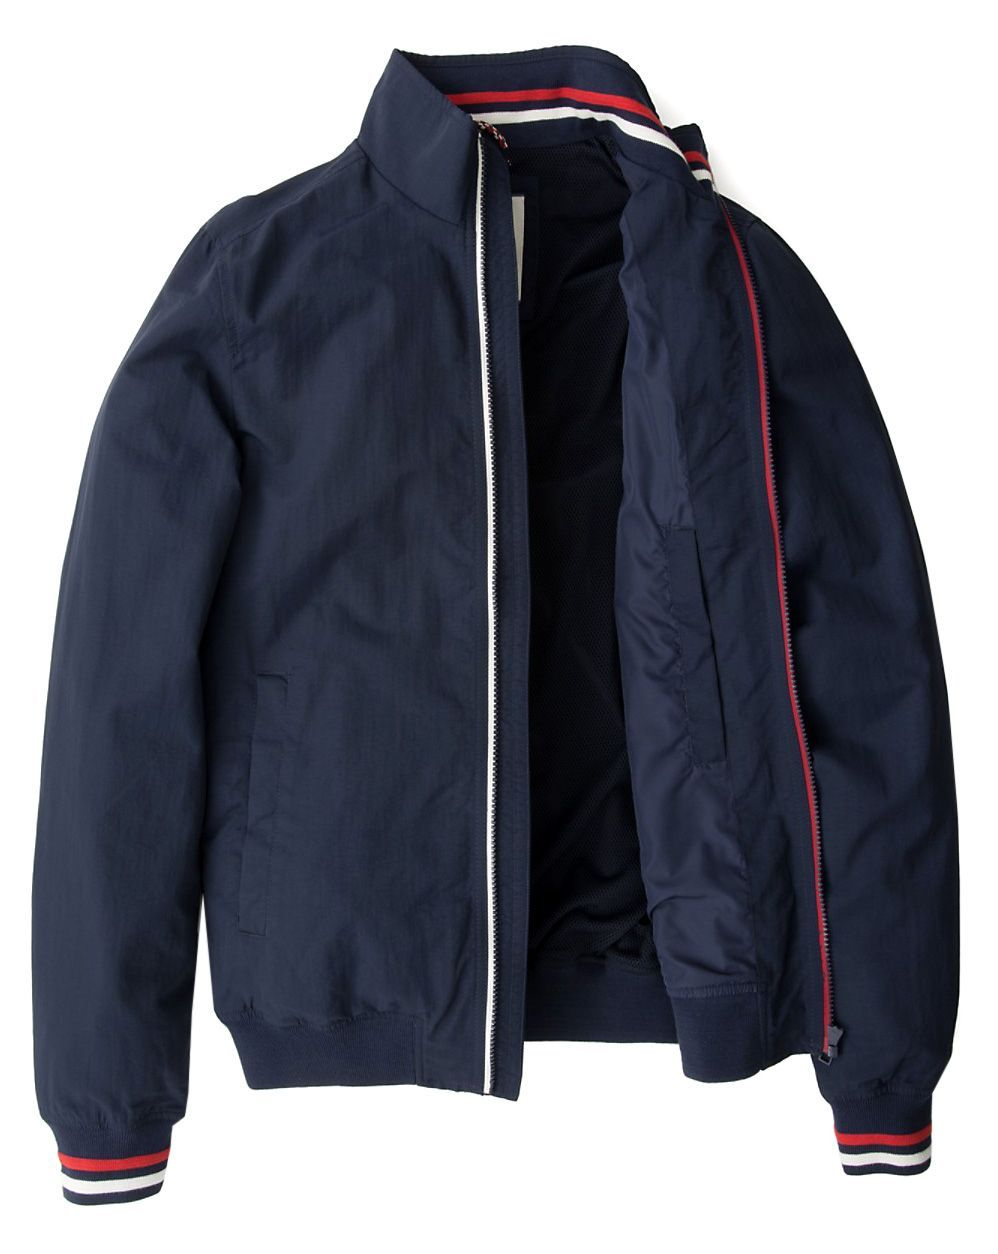 This Should Be Your Go To Spring Jacket Mens Outdoor Jackets Tommy Hilfiger Man Jacket Jackets [ 1254 x 998 Pixel ]